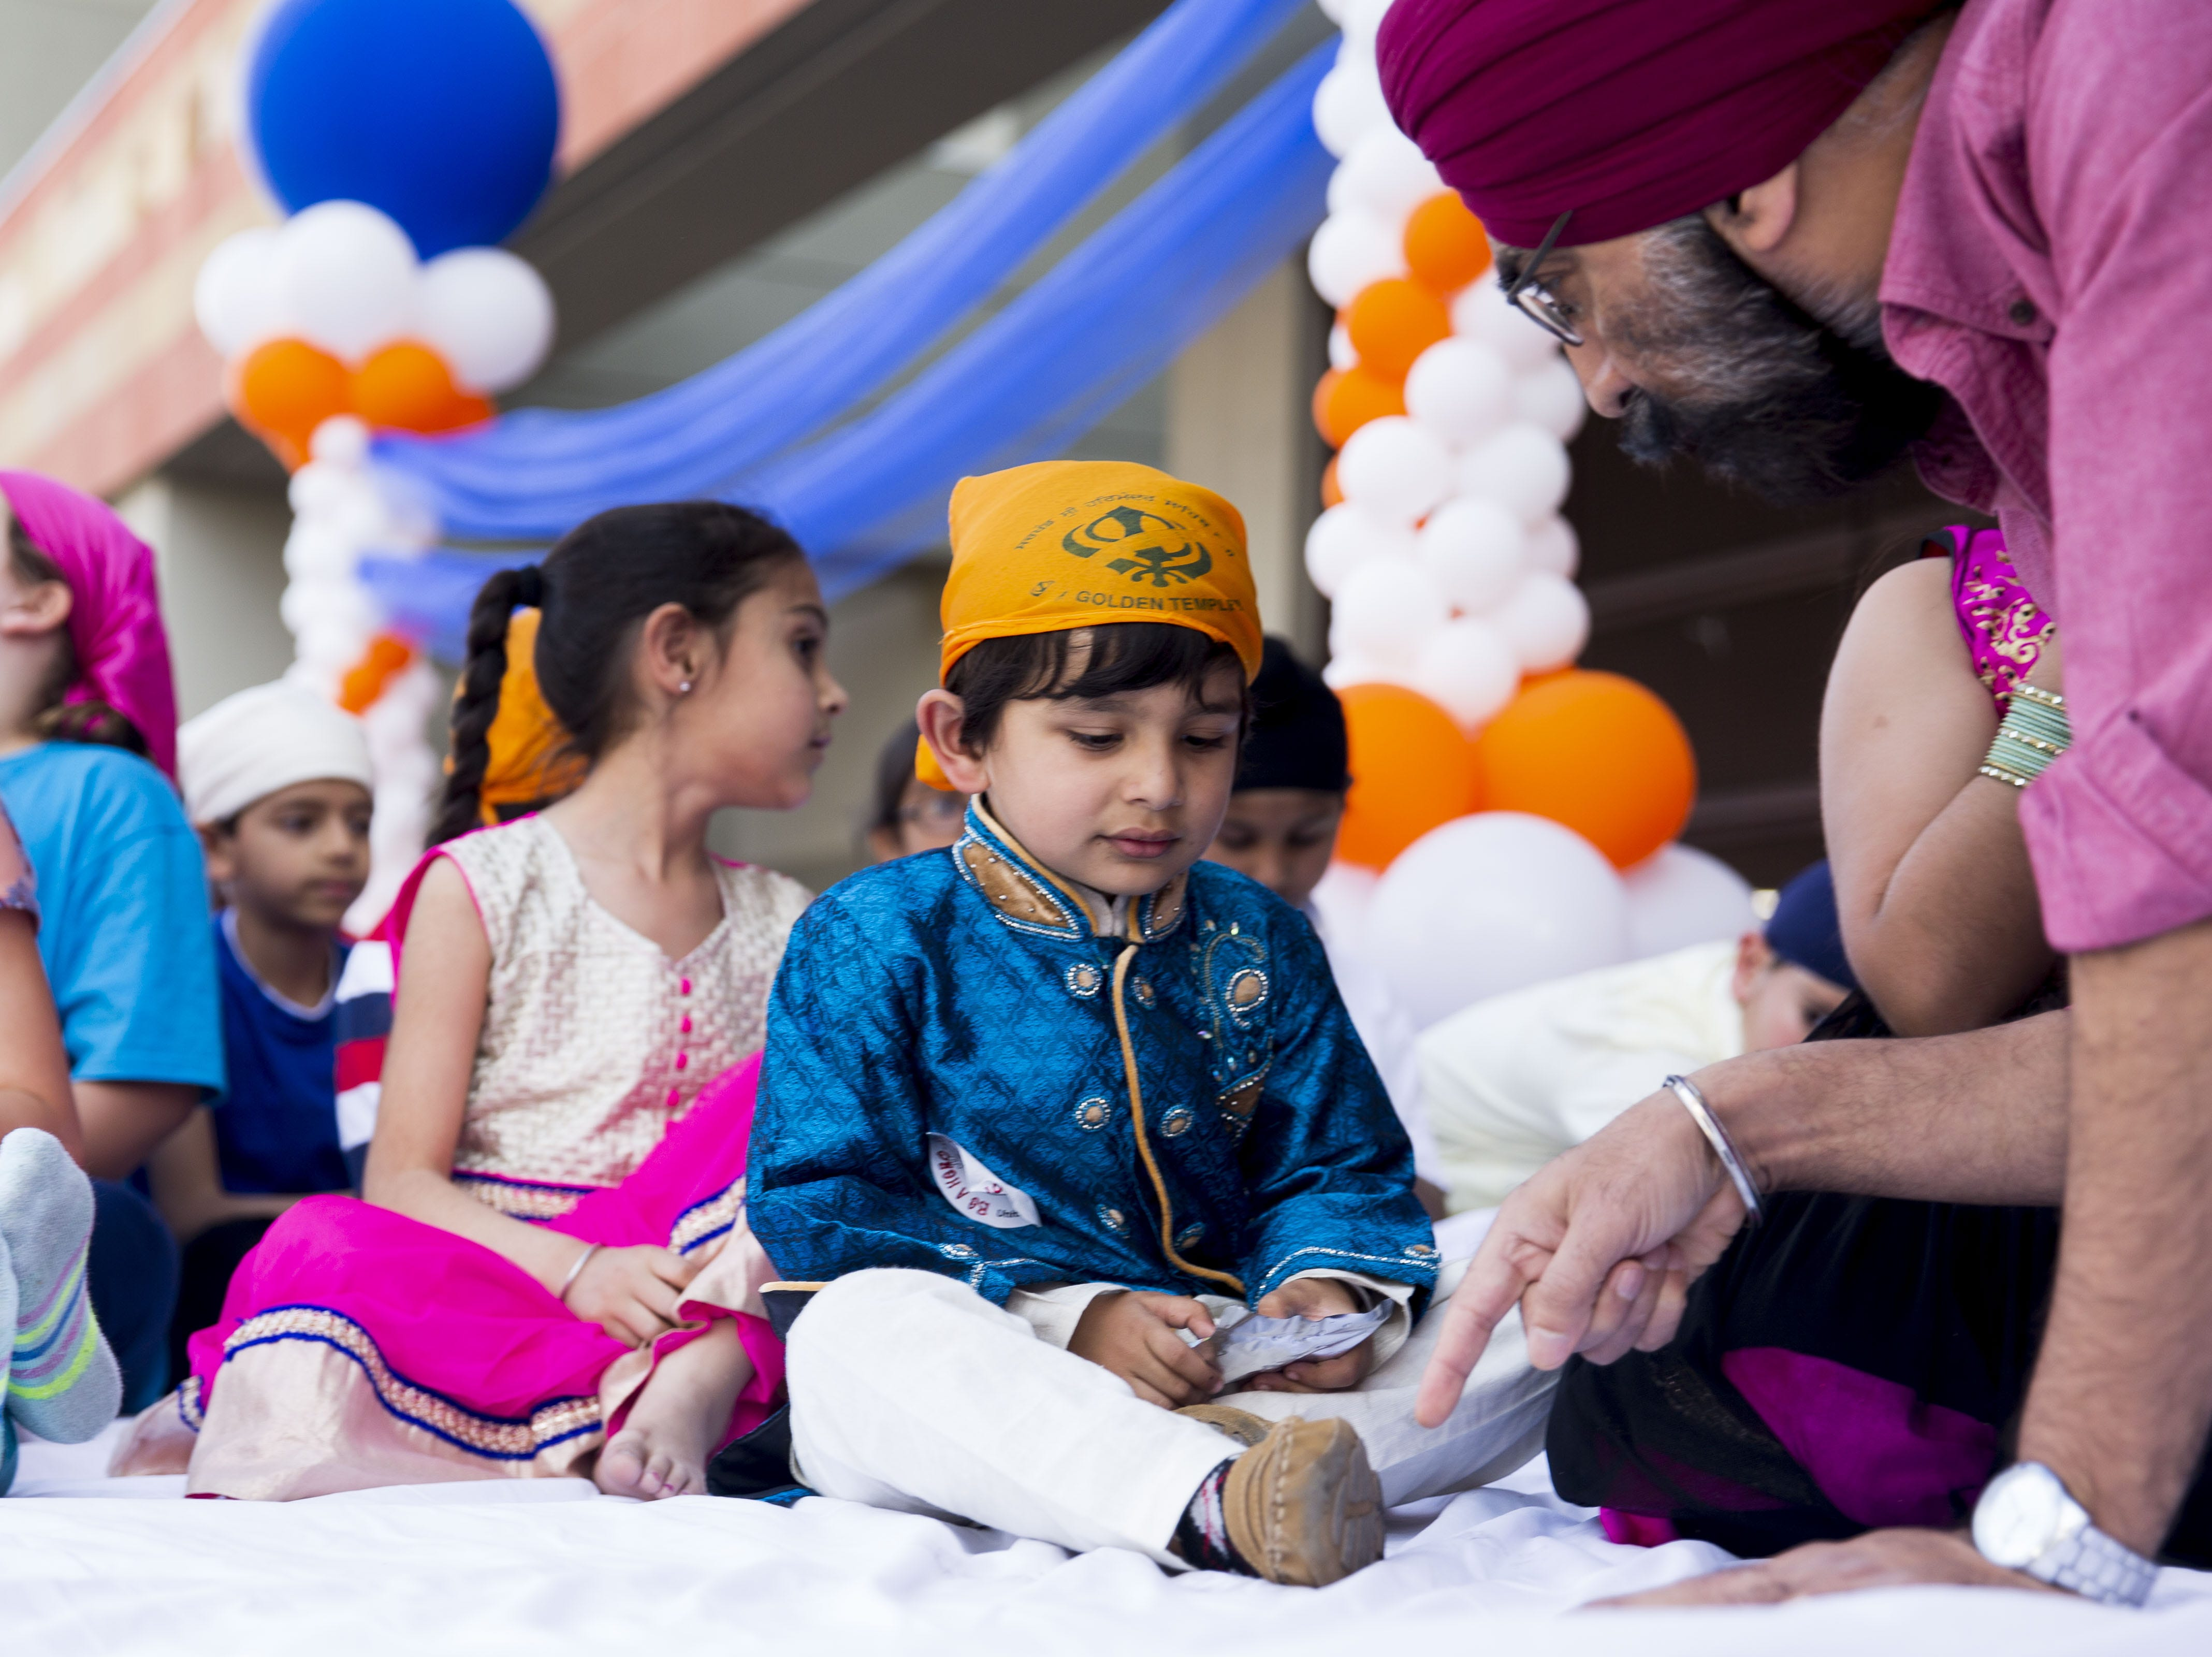 Agam Bajwa, 3, sits on the float as he waits for the Sikh parade in Phoenix to begin on March 24, 2019.